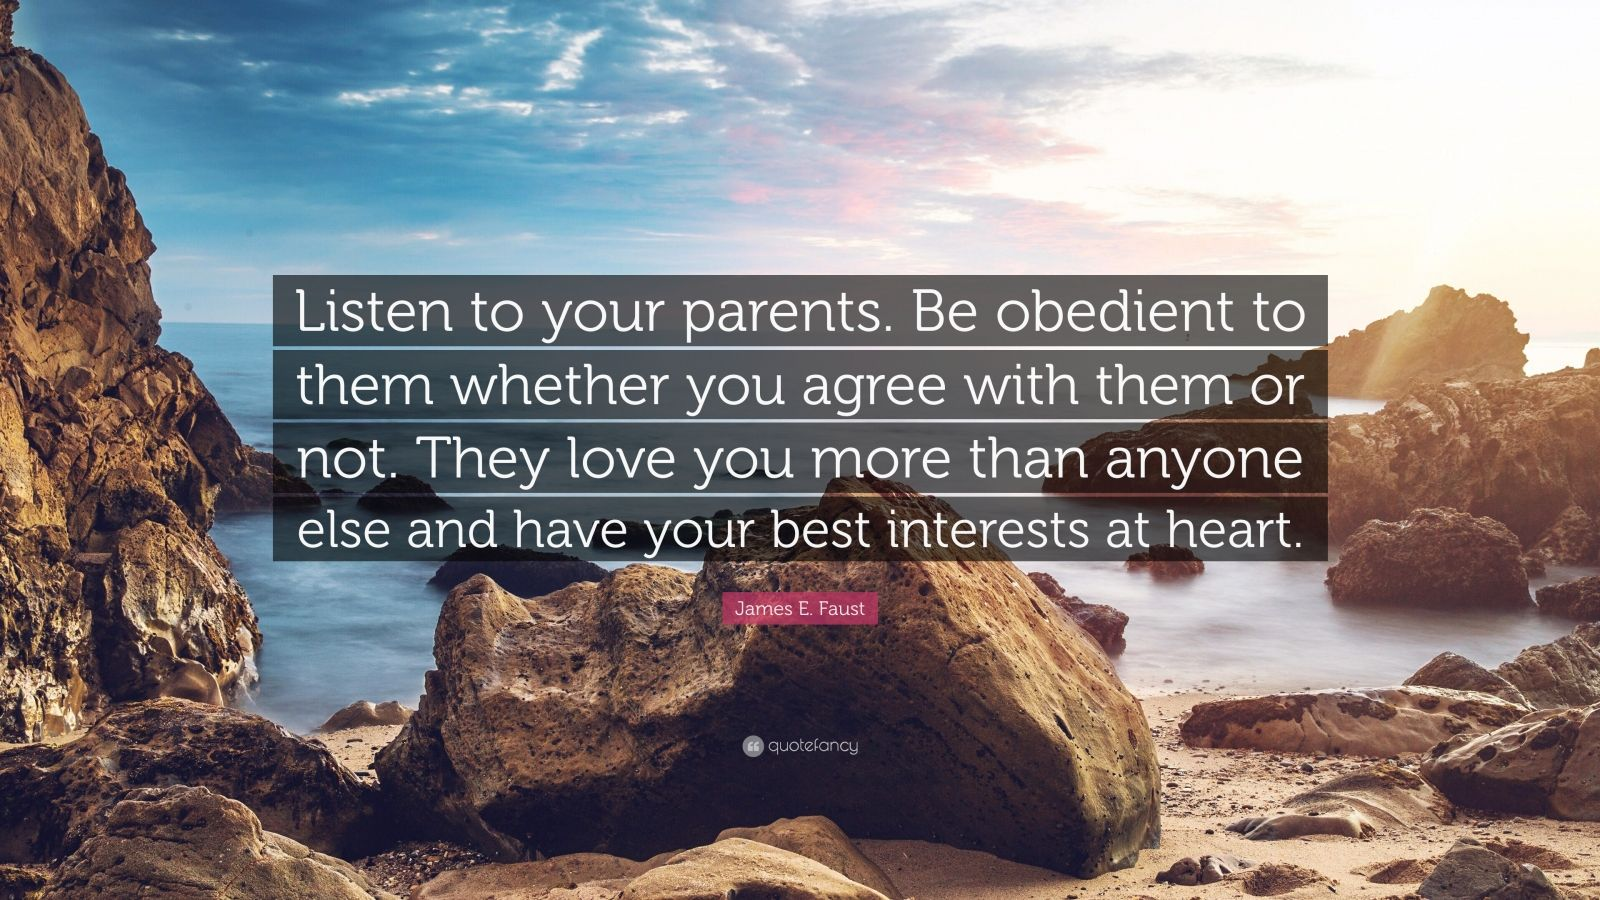 "James E. Faust Quote: ""Listen to your parents. Be obedient to them whether you agree with them or not. They love you more than anyone else and have your best interests at heart."""